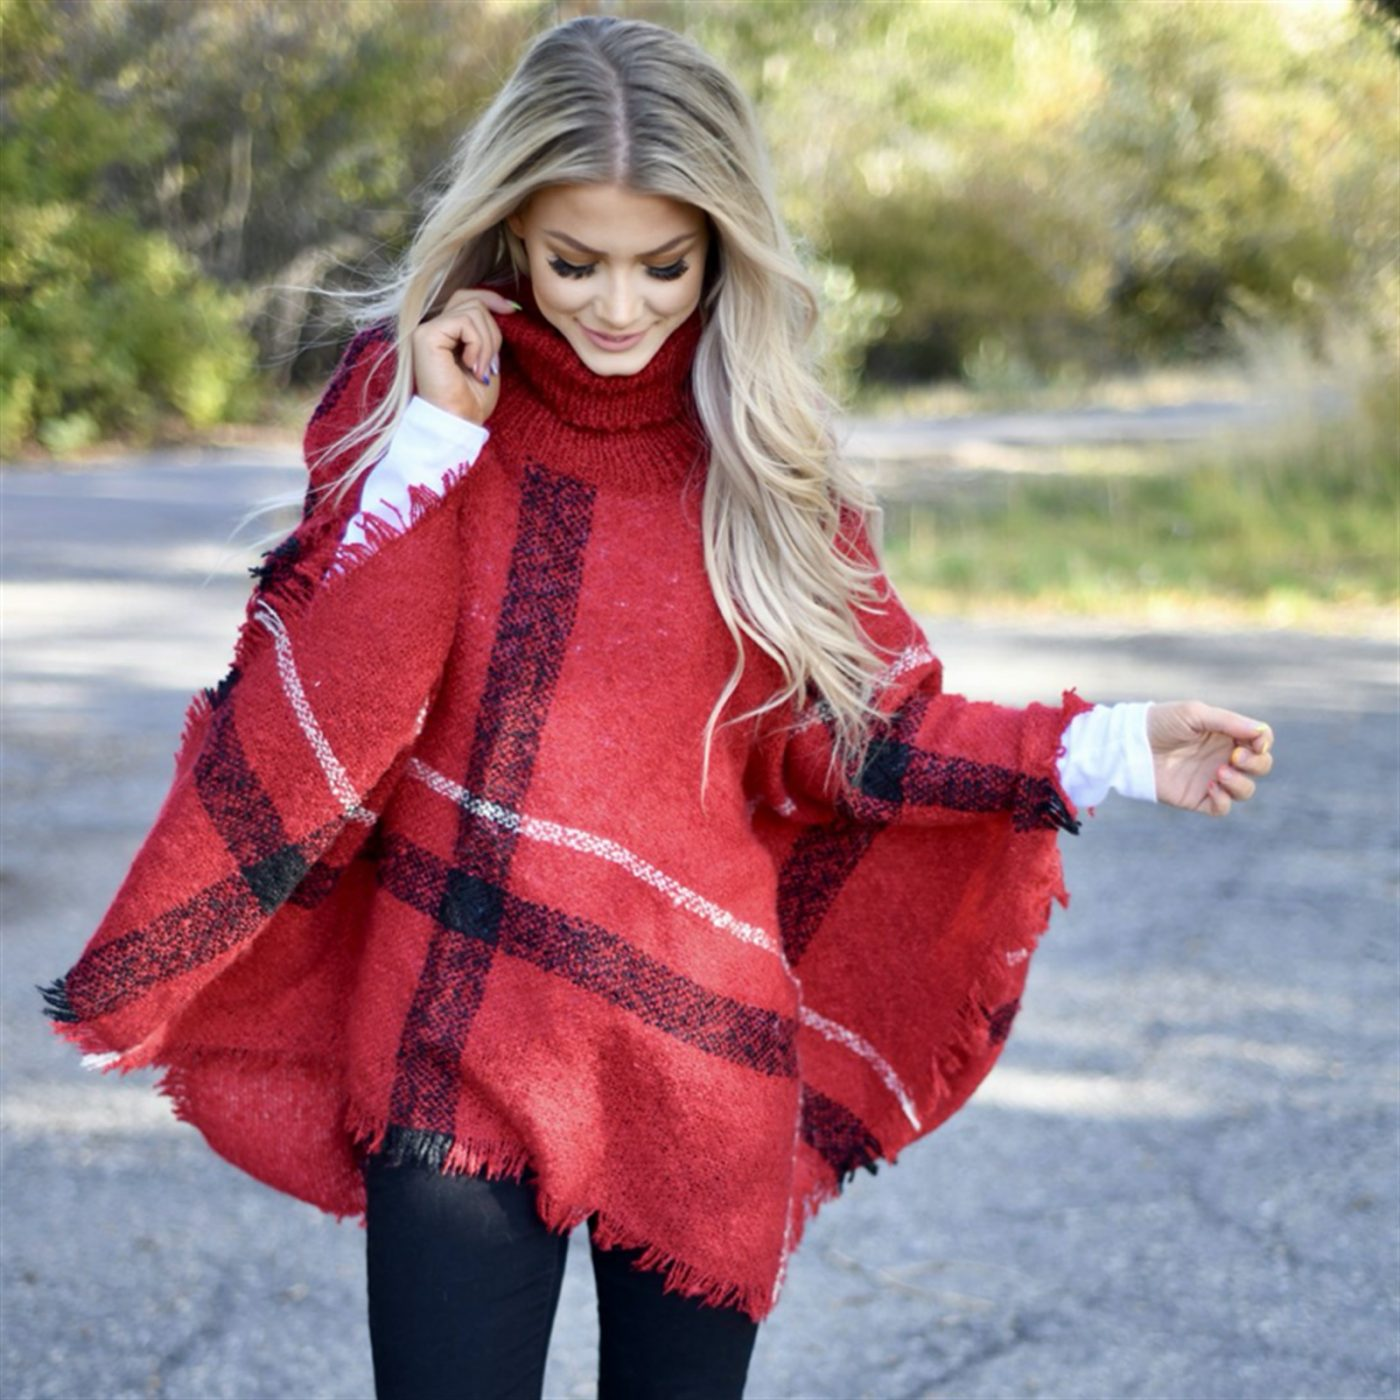 Was $64.99 - Now $32.99 - The Favorite Turtle Neck Poncho (10/15 to 10/17)